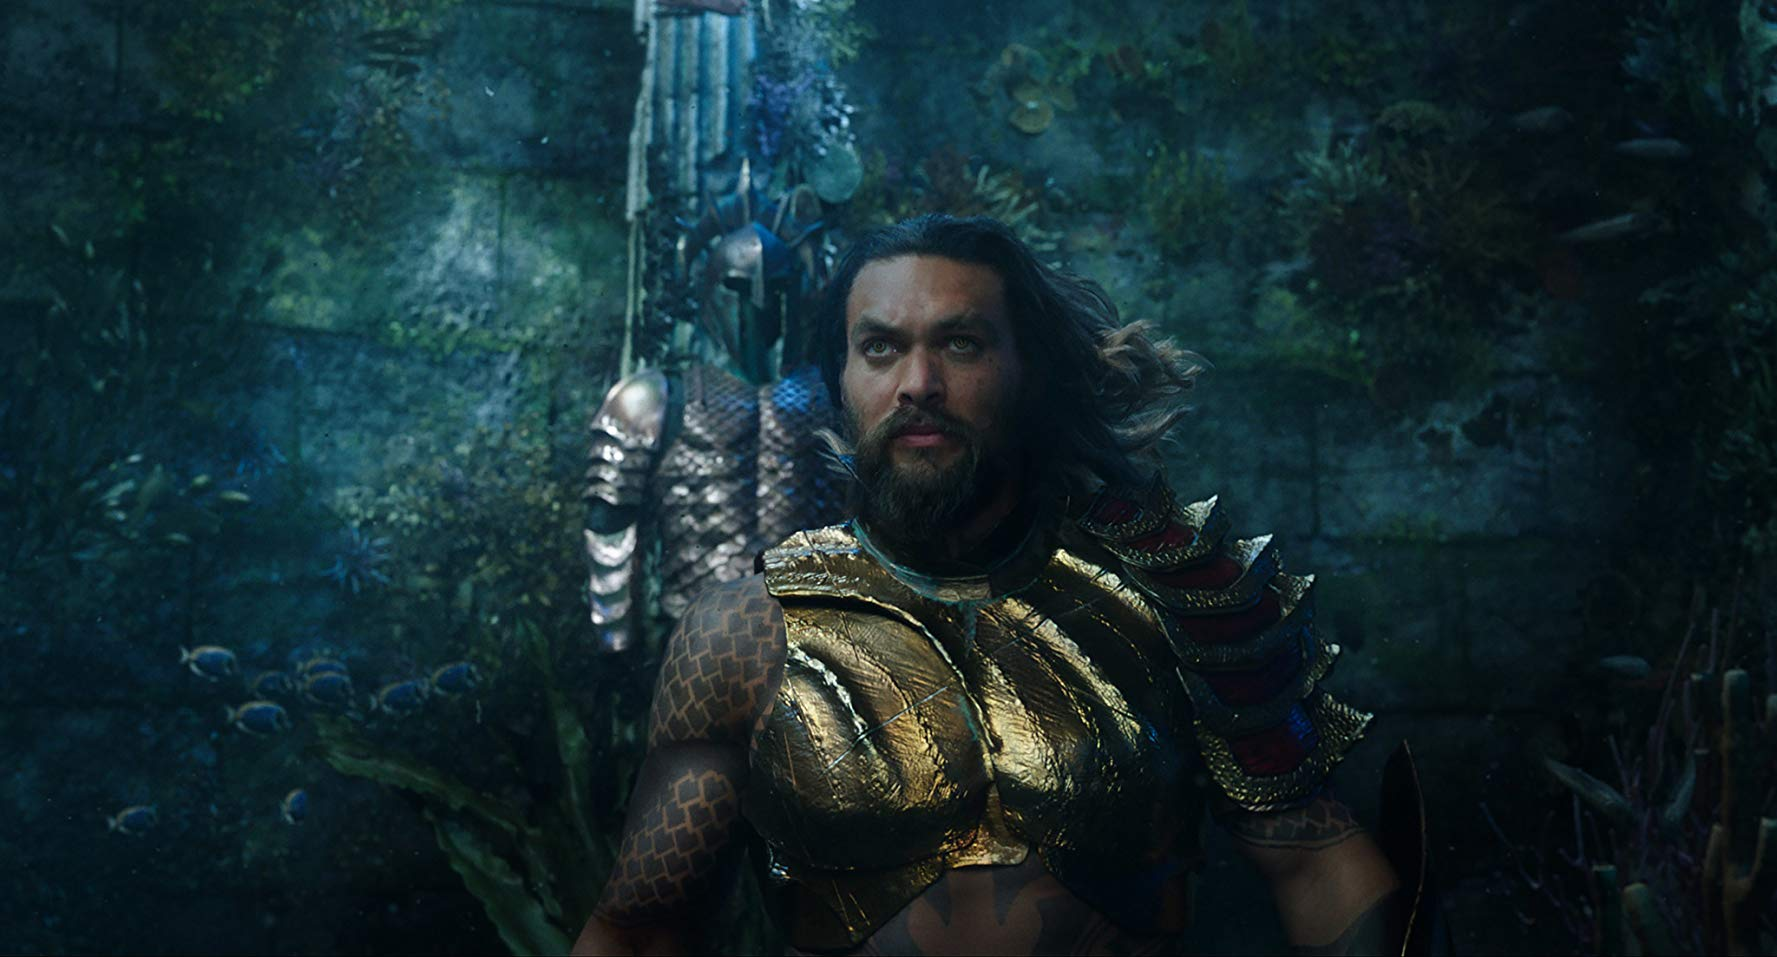 Aquaman Makes Big Splash at China Box Office